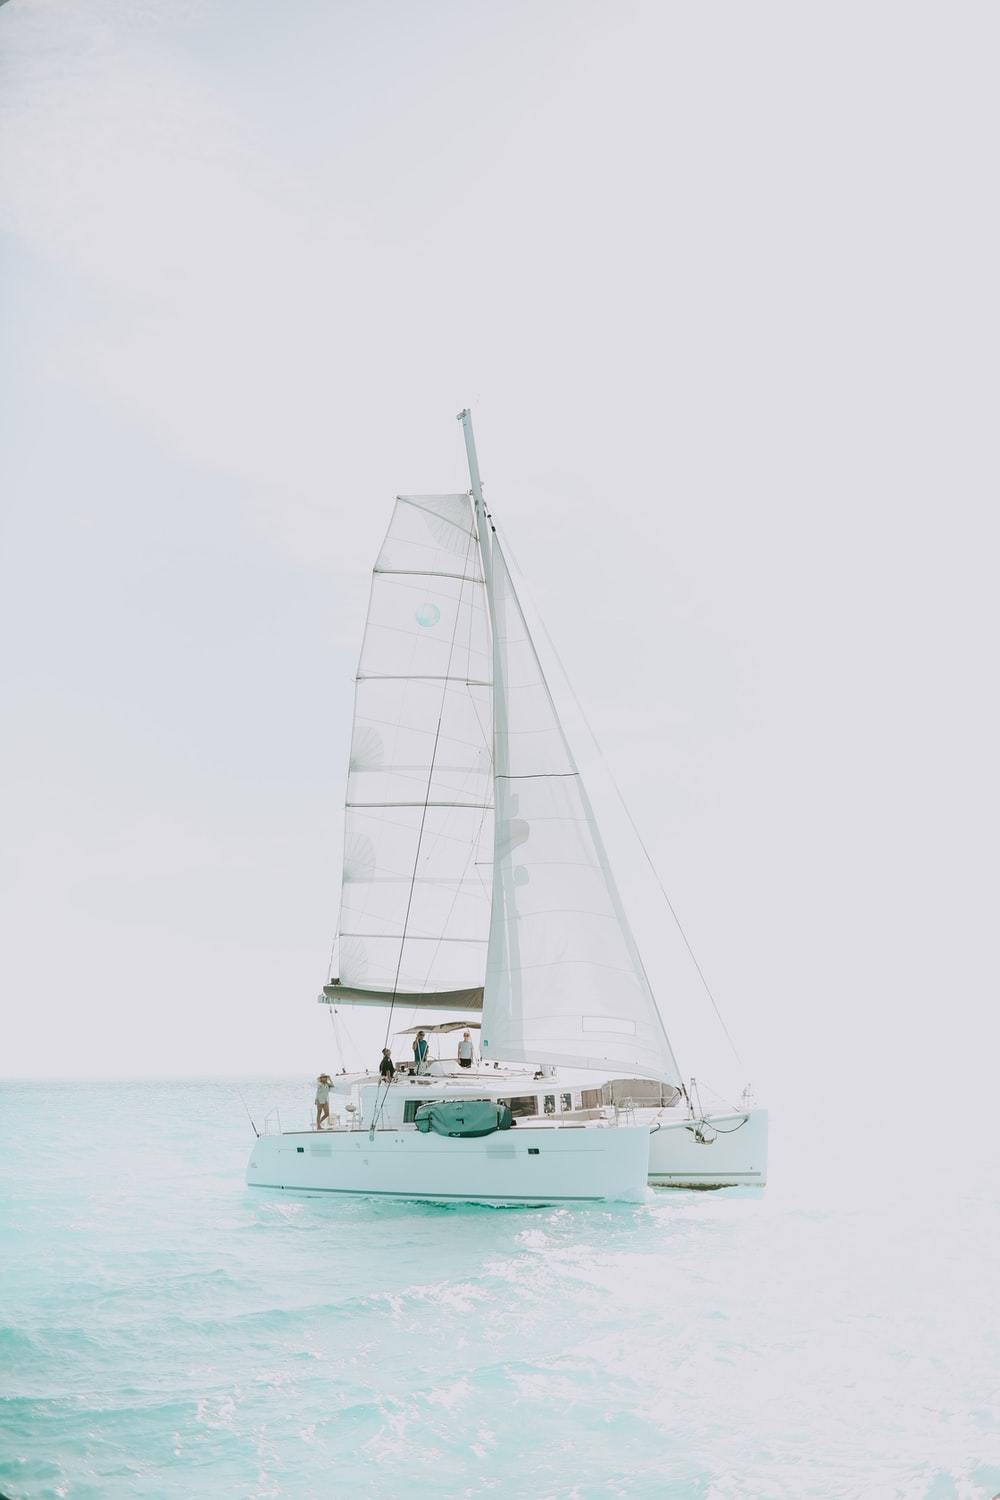 white yacht on body of water during daytime